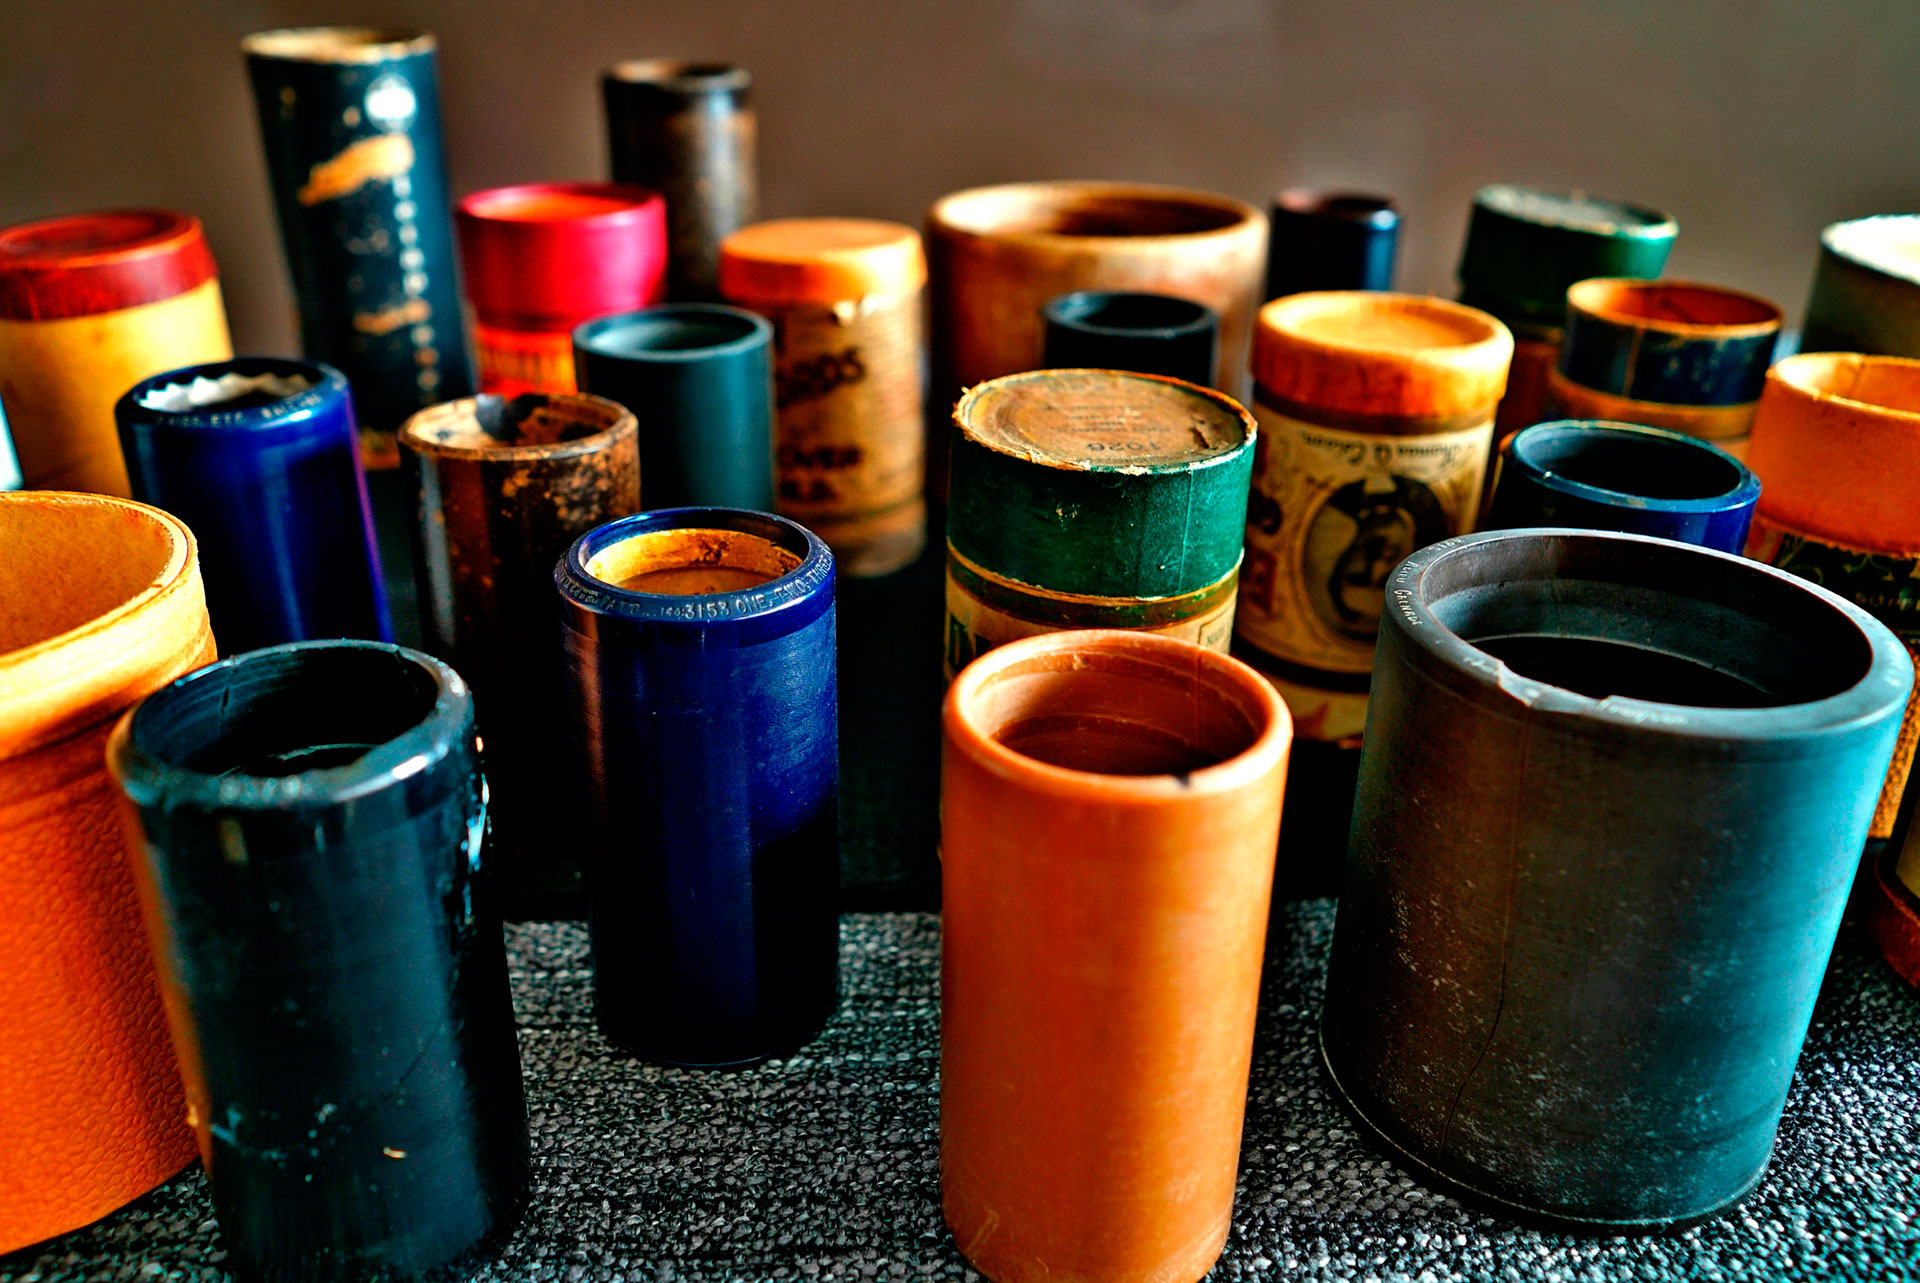 Cilindros de cera a digital, wax cylinders to digital,